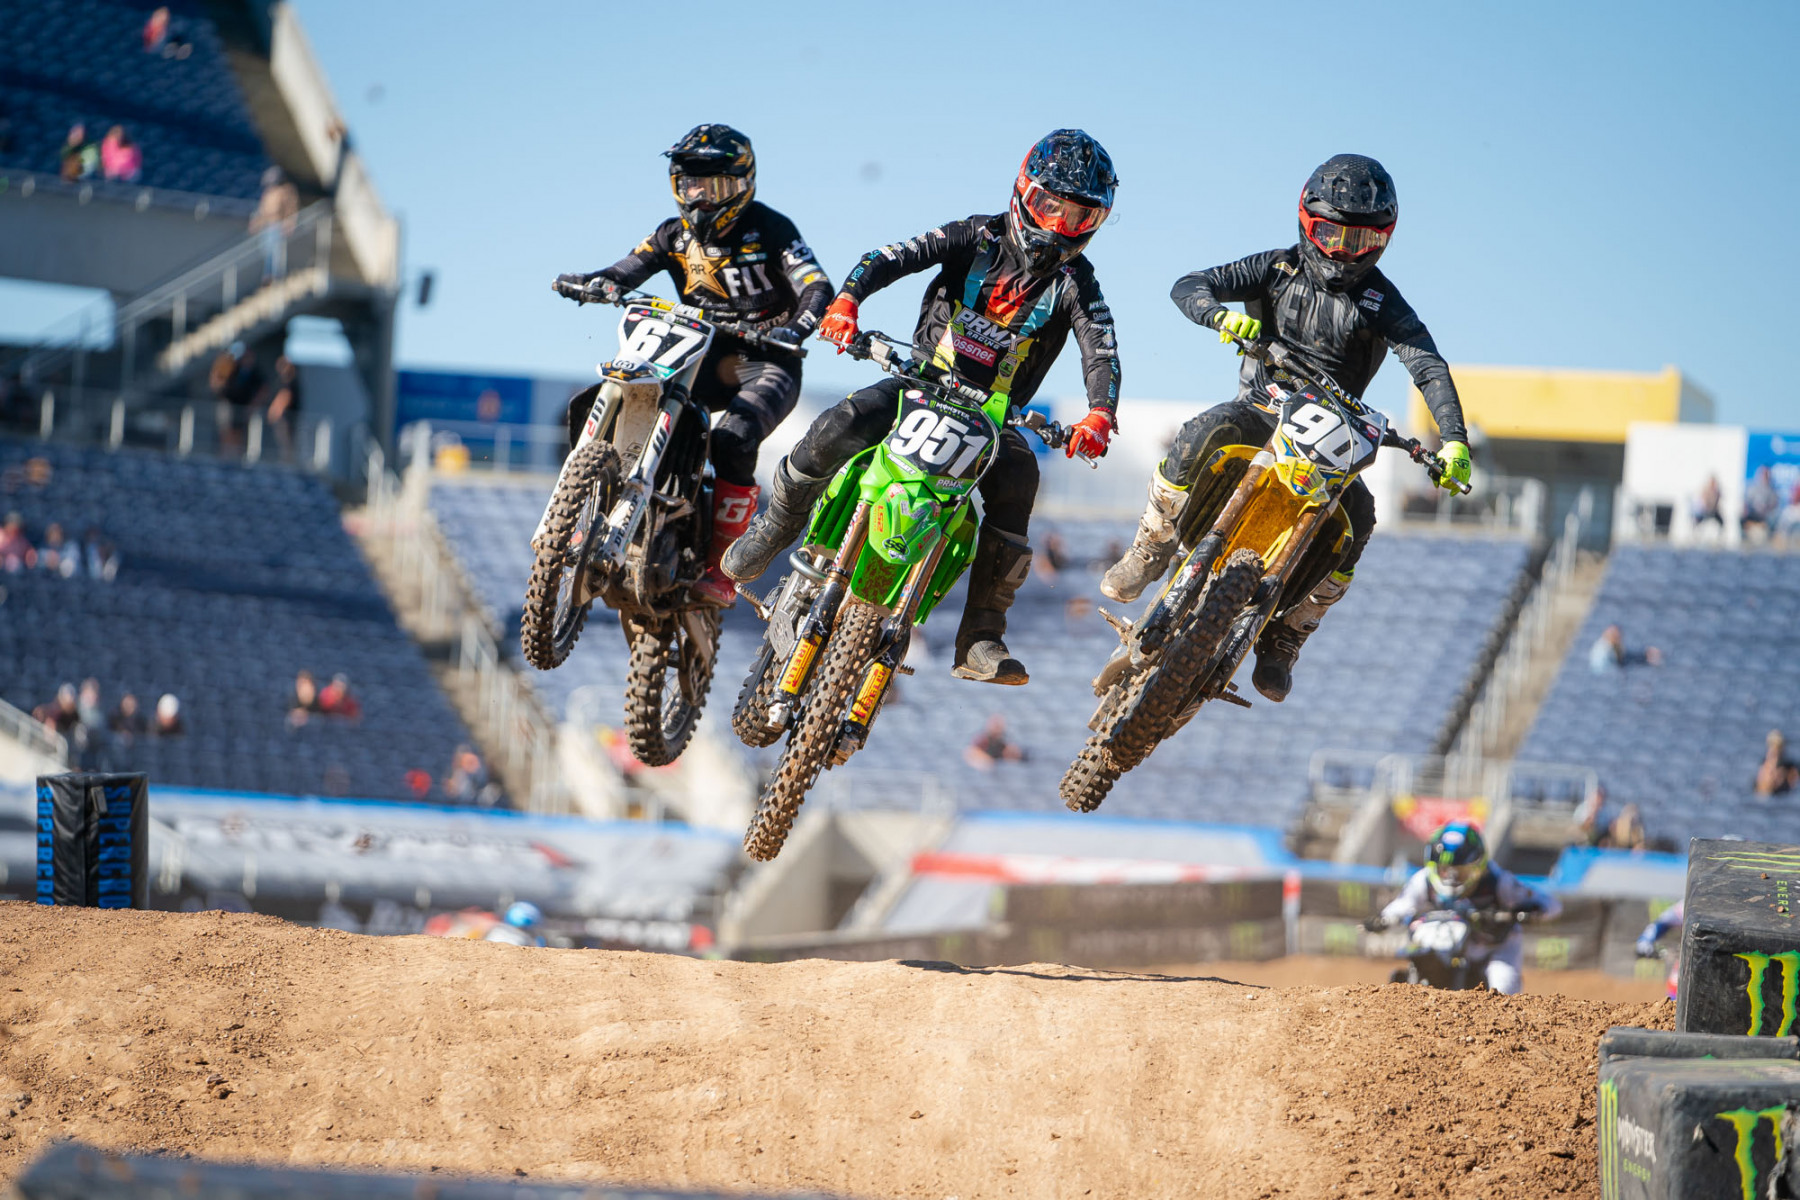 2021-ORLANDO-TWO-SUPERCROSS_KICKSTART_1508